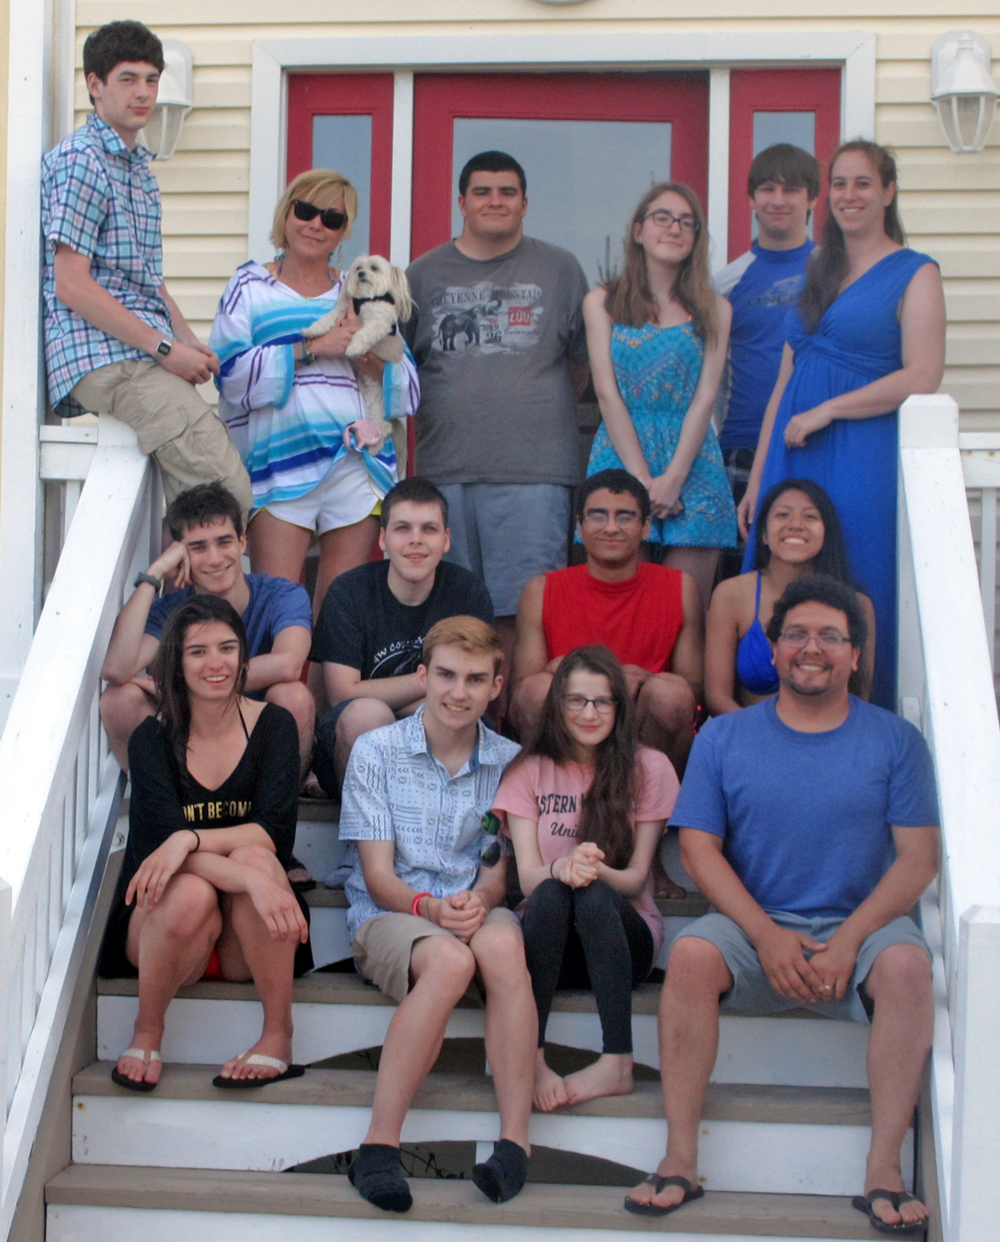 Seniors Beach Trip in Corolla, NC - May 2015